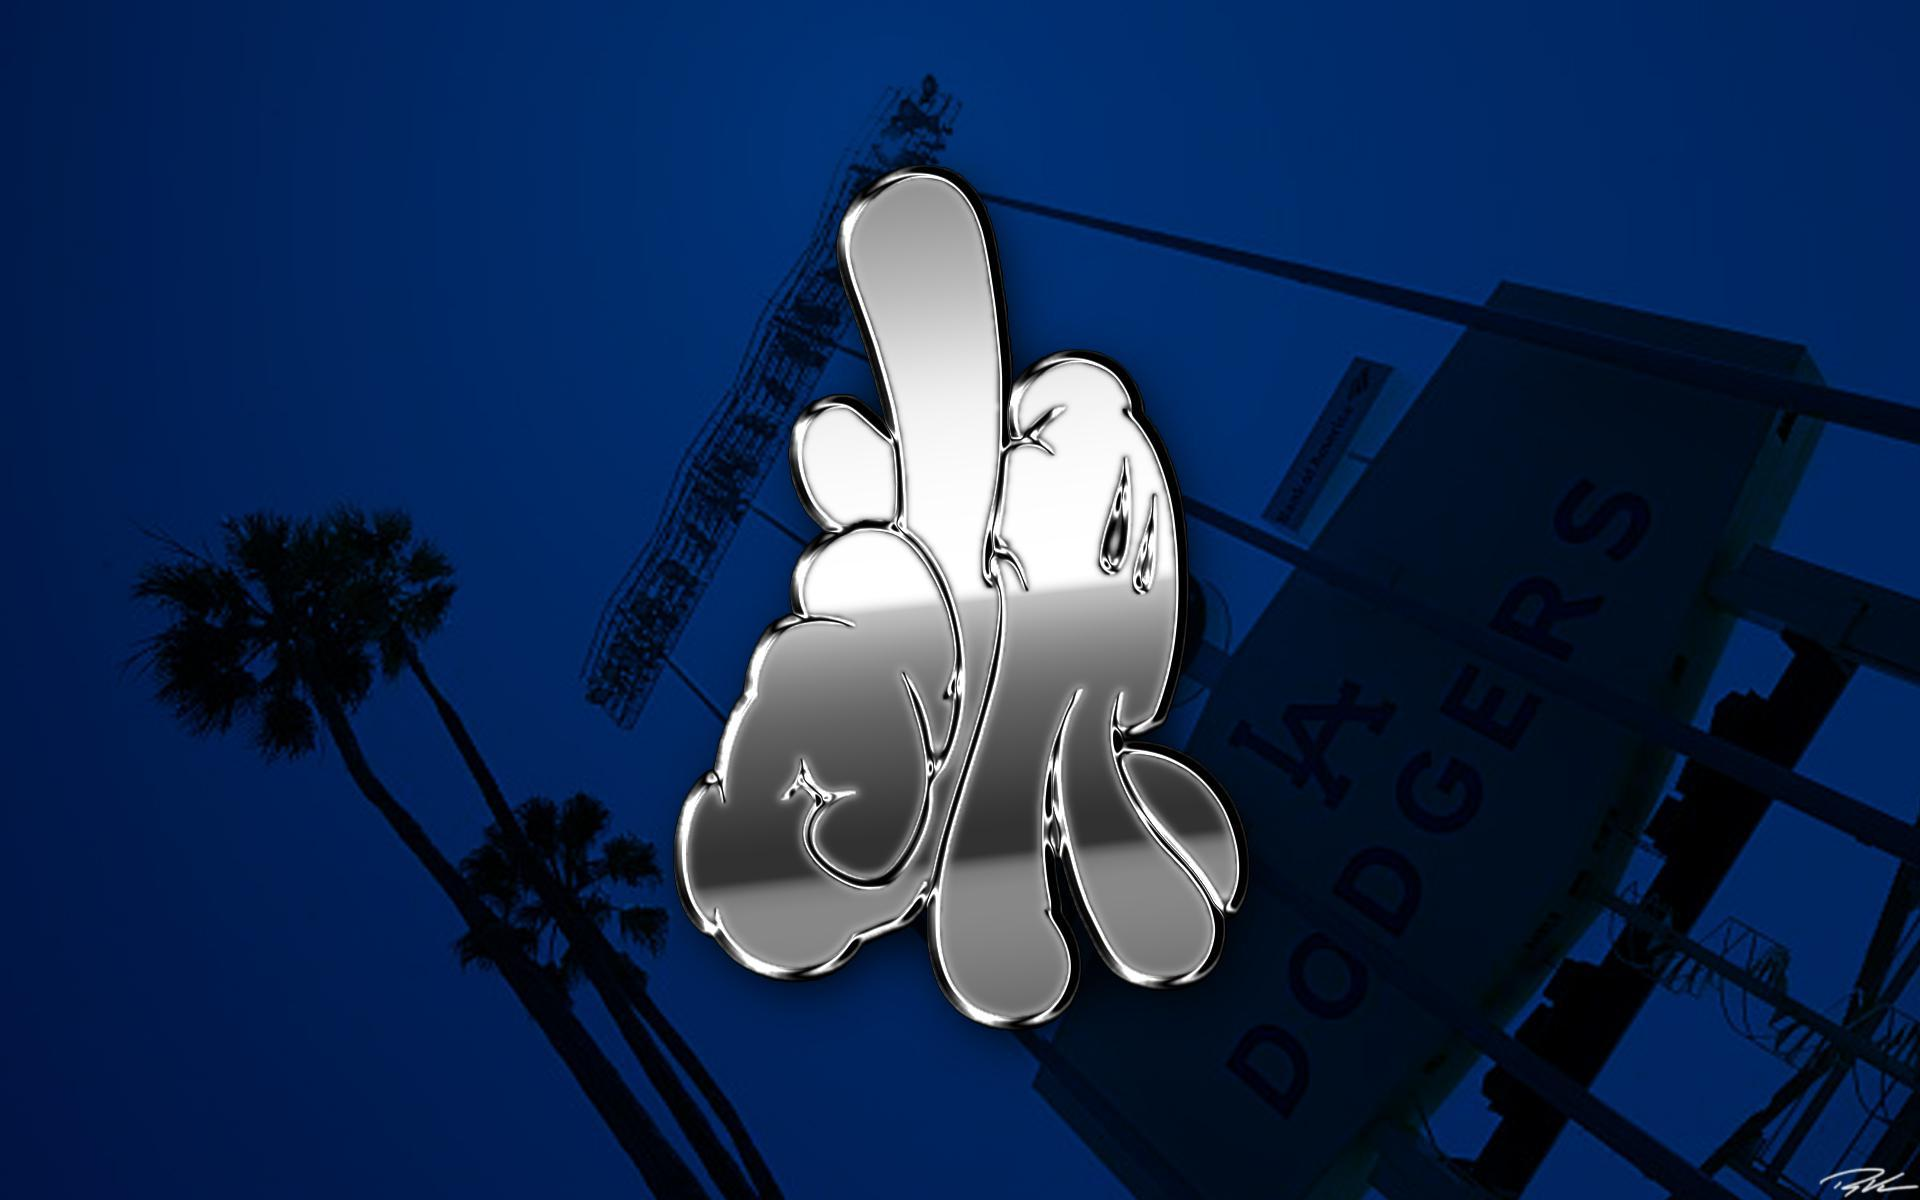 Dodgers Wallpaper for Home Page - WallpaperSafari